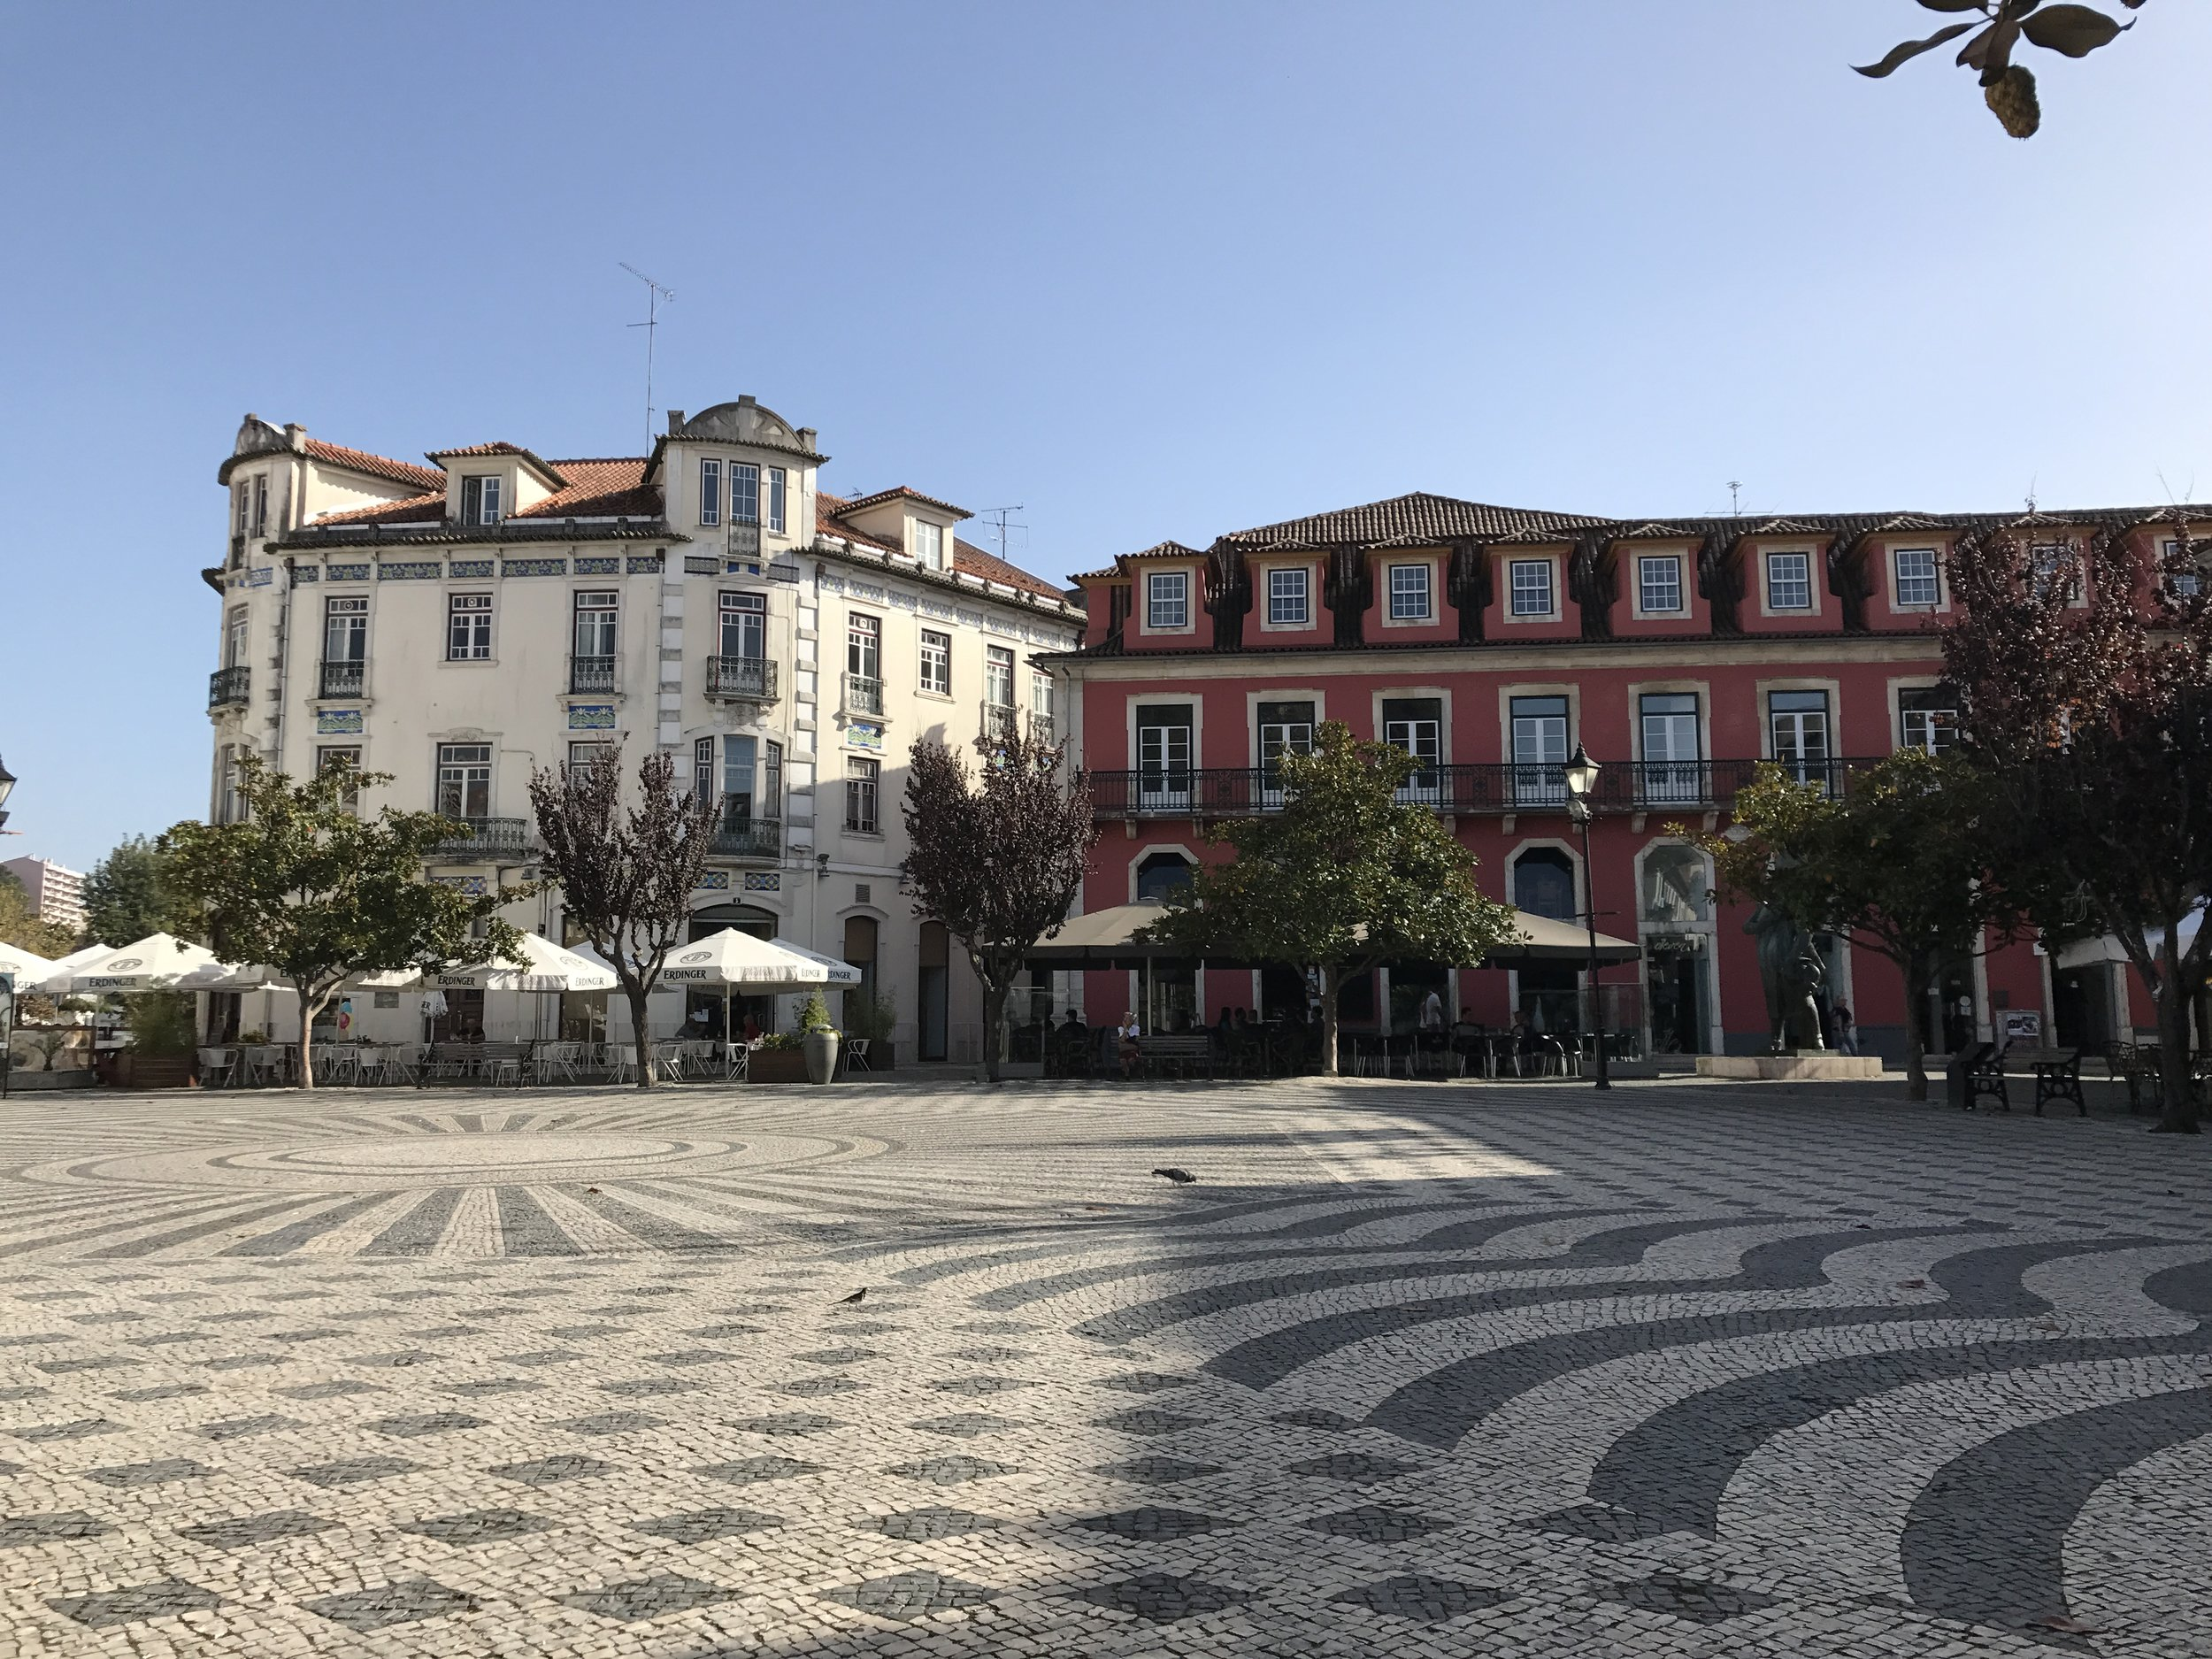 Leiria city! One of my favorite spots. In October it was a little warmer than it is now, so I'd go sit on this bench and take in the view. I study arts here, so we are constantly sketching, and this is the perfect spot for it.